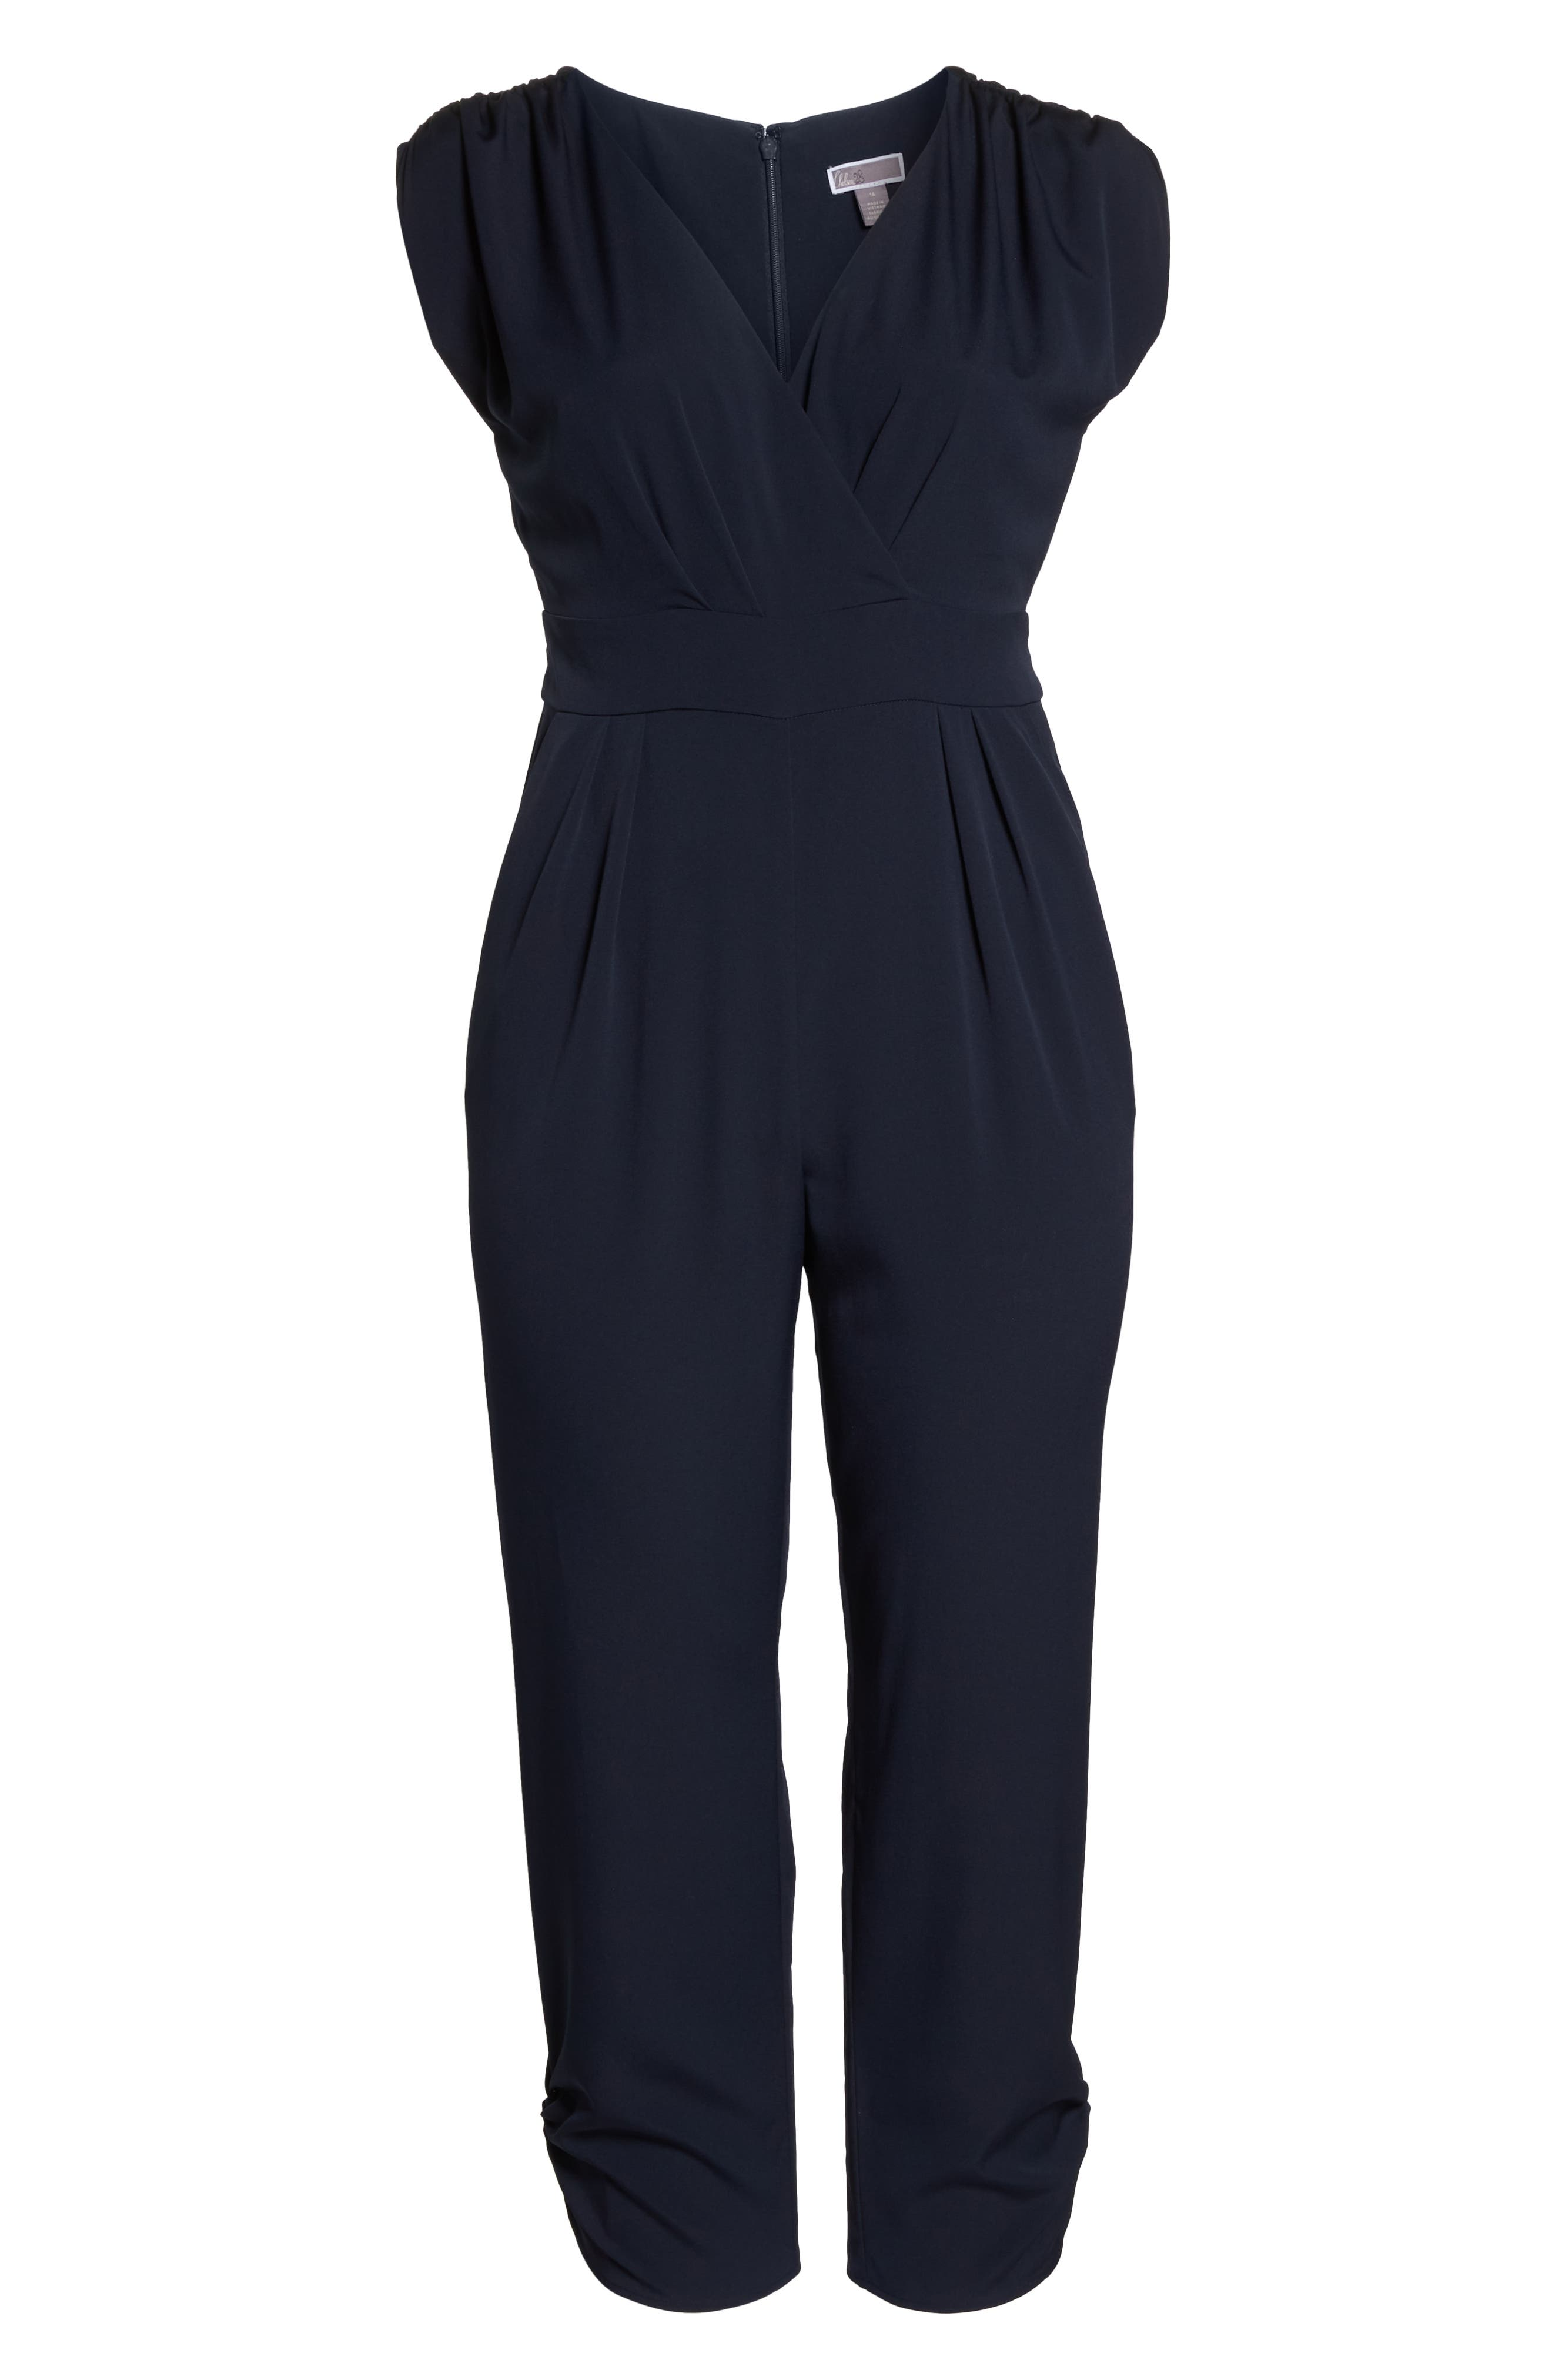 Ruched Ankle Jumpsuit,                             Alternate thumbnail 12, color,                             410